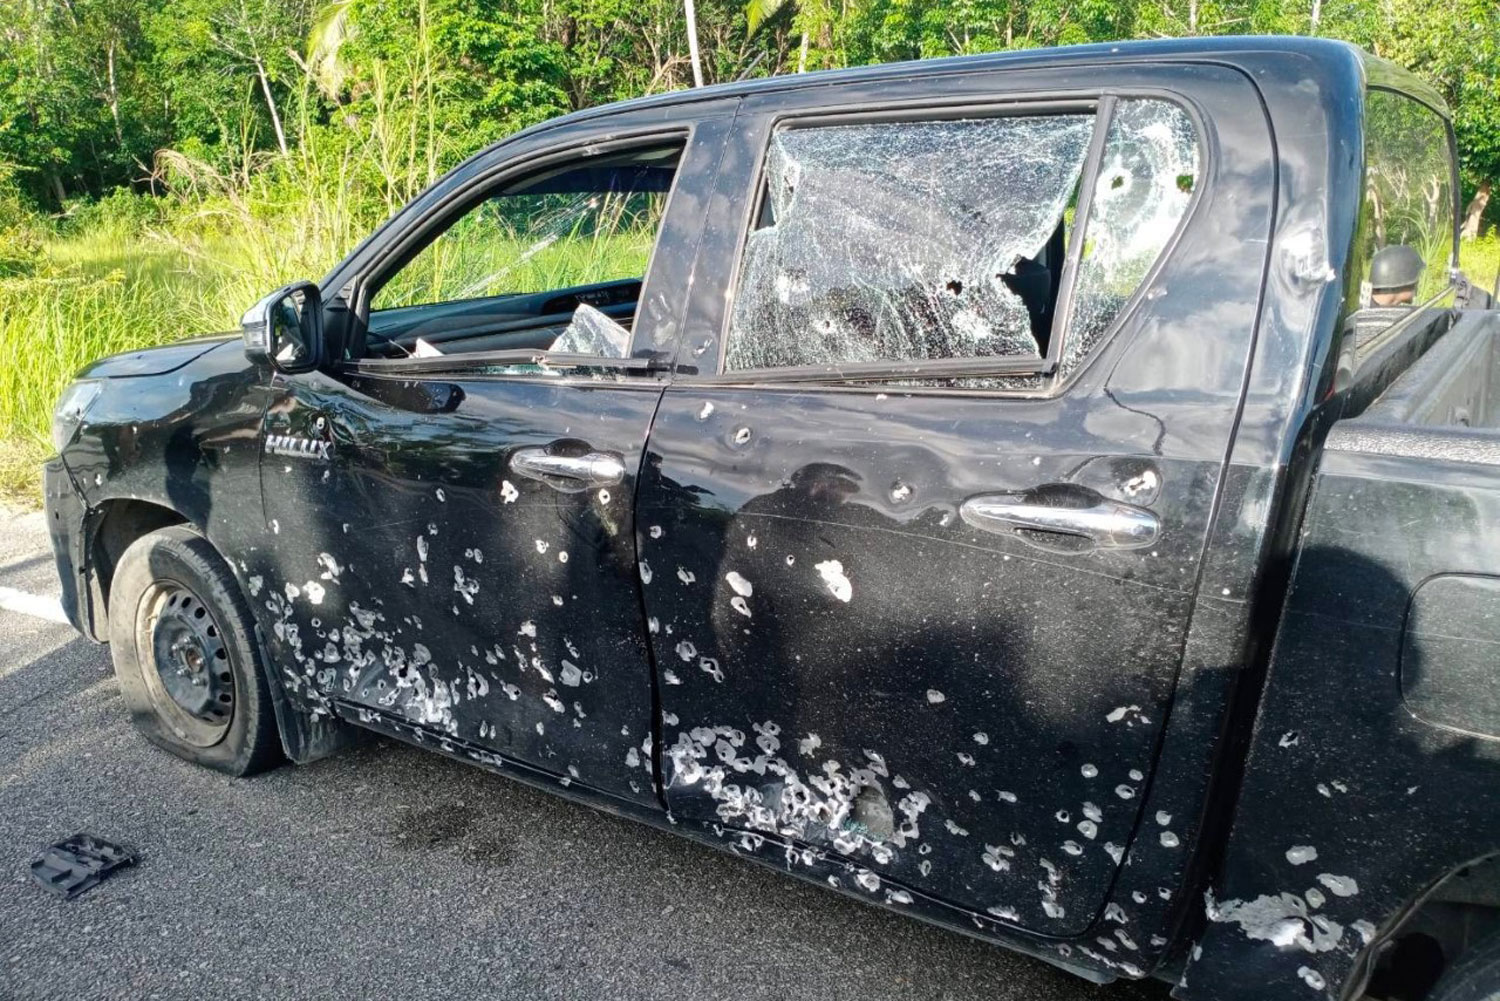 A police pickup truck was damaged in a bomb and shooting attack in Sai Bui district of Pattani on Saturday afternoon. Five officers on board were wounded. (Photo: Abdullah Benjakat)